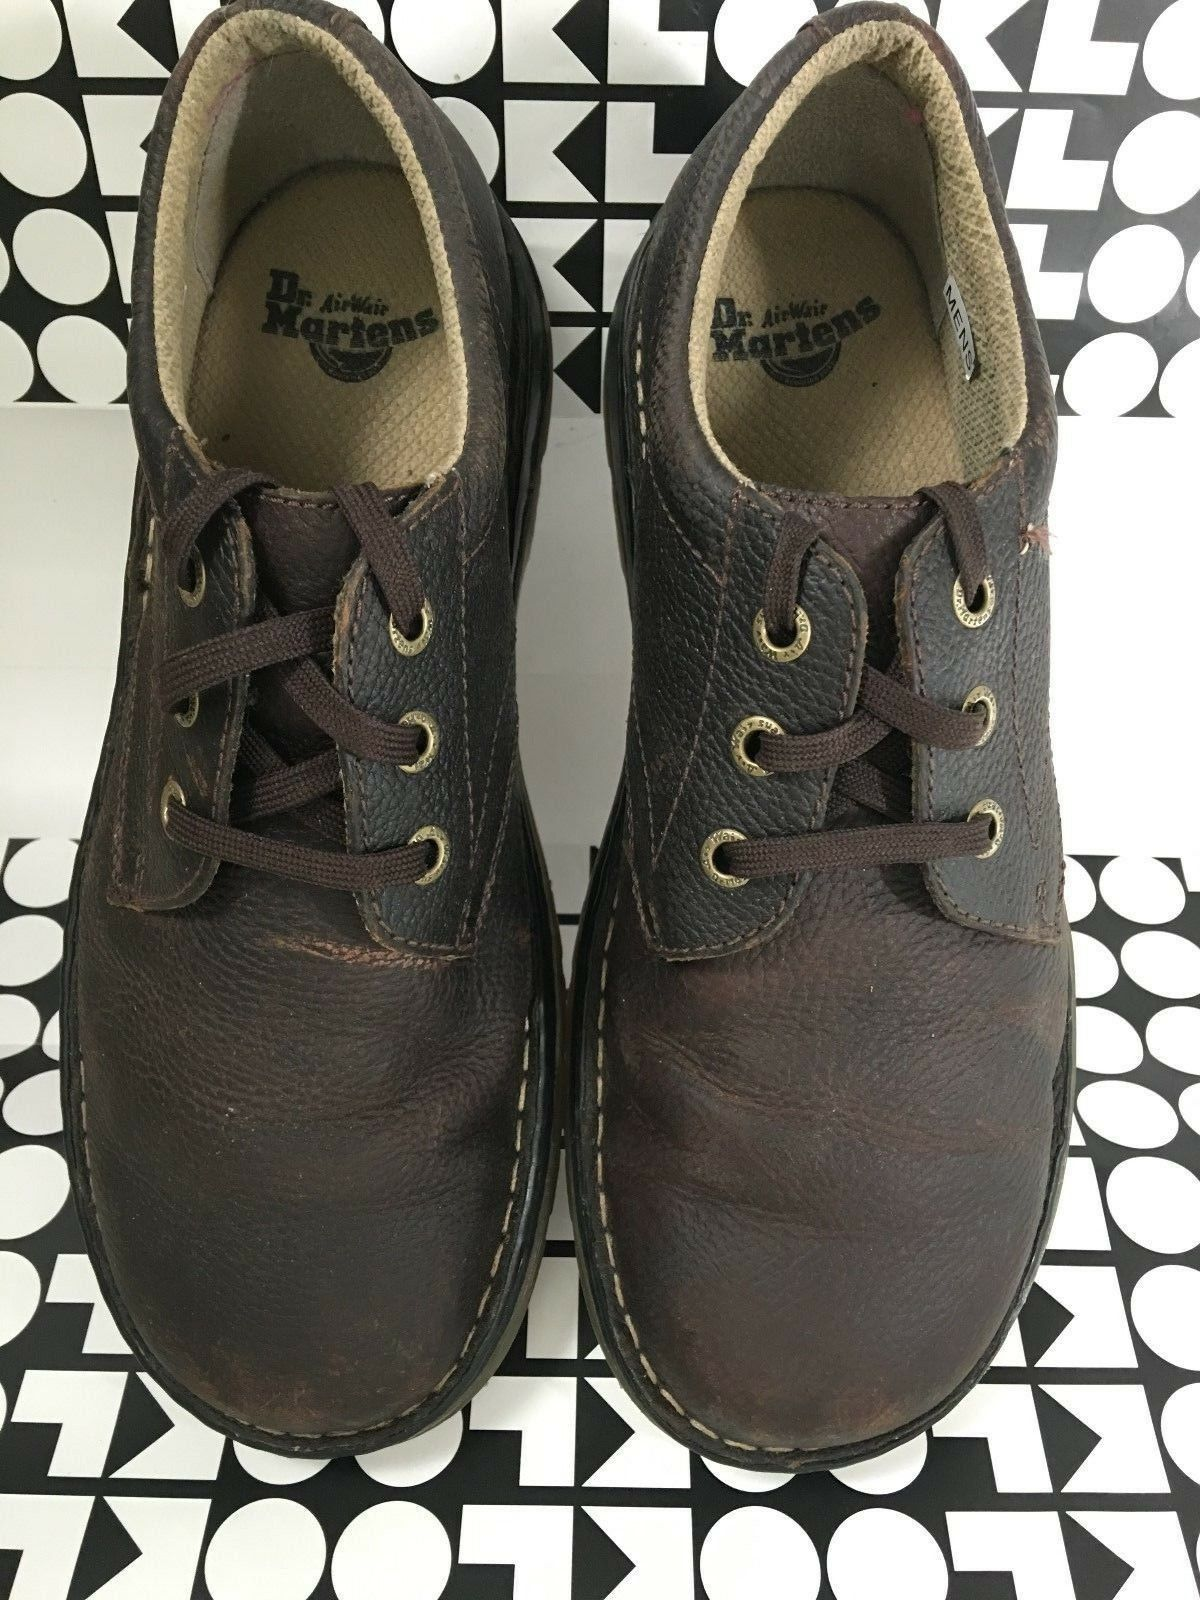 Dr. Martens Men's Casual Lace Up Leather Oxford shoes BROWN, USM12,  AW004